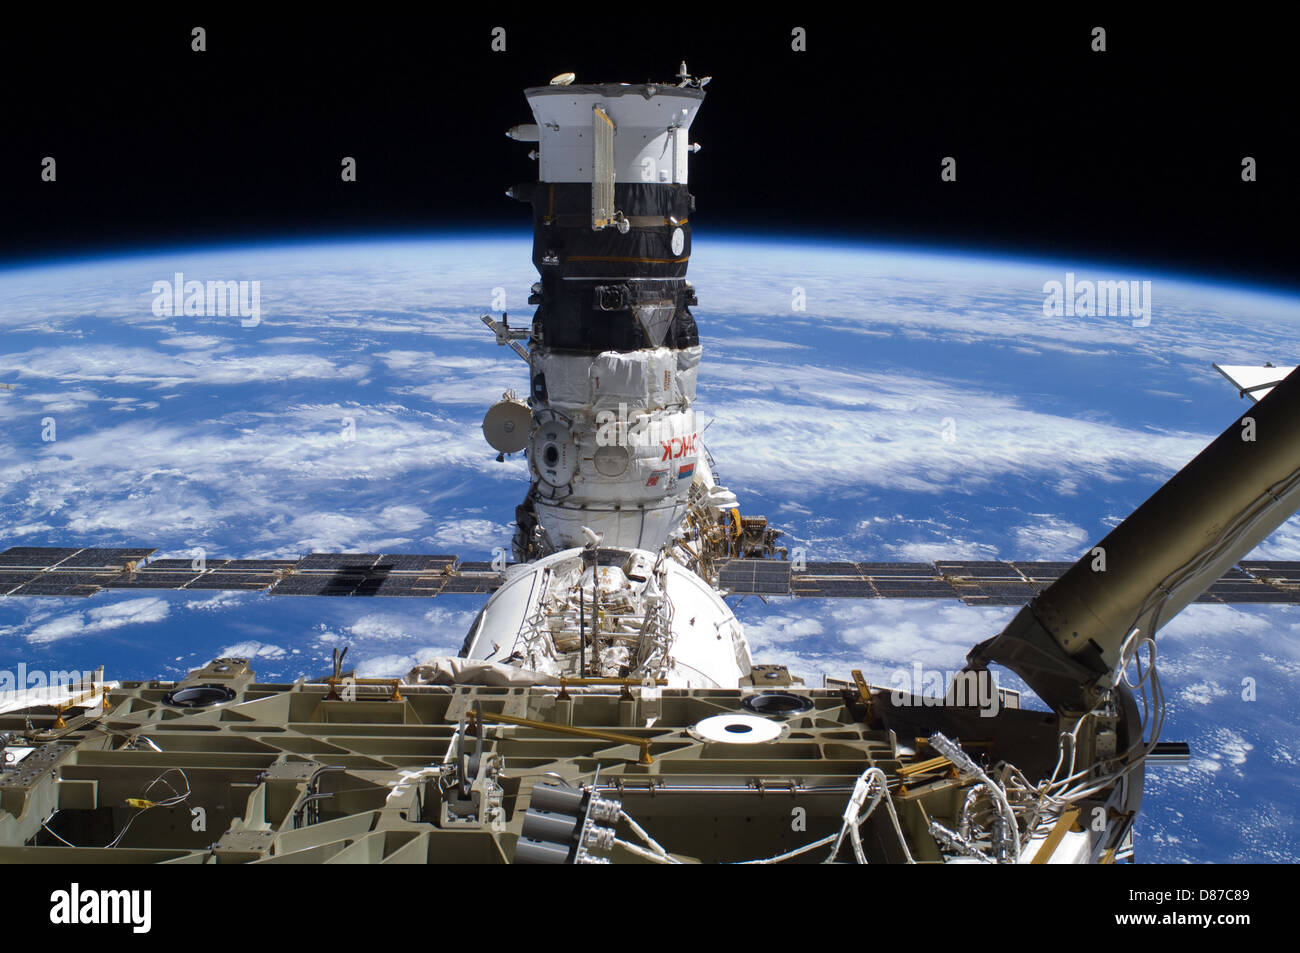 STS-129 ISS-21 Poisk.jpg - Stock Image